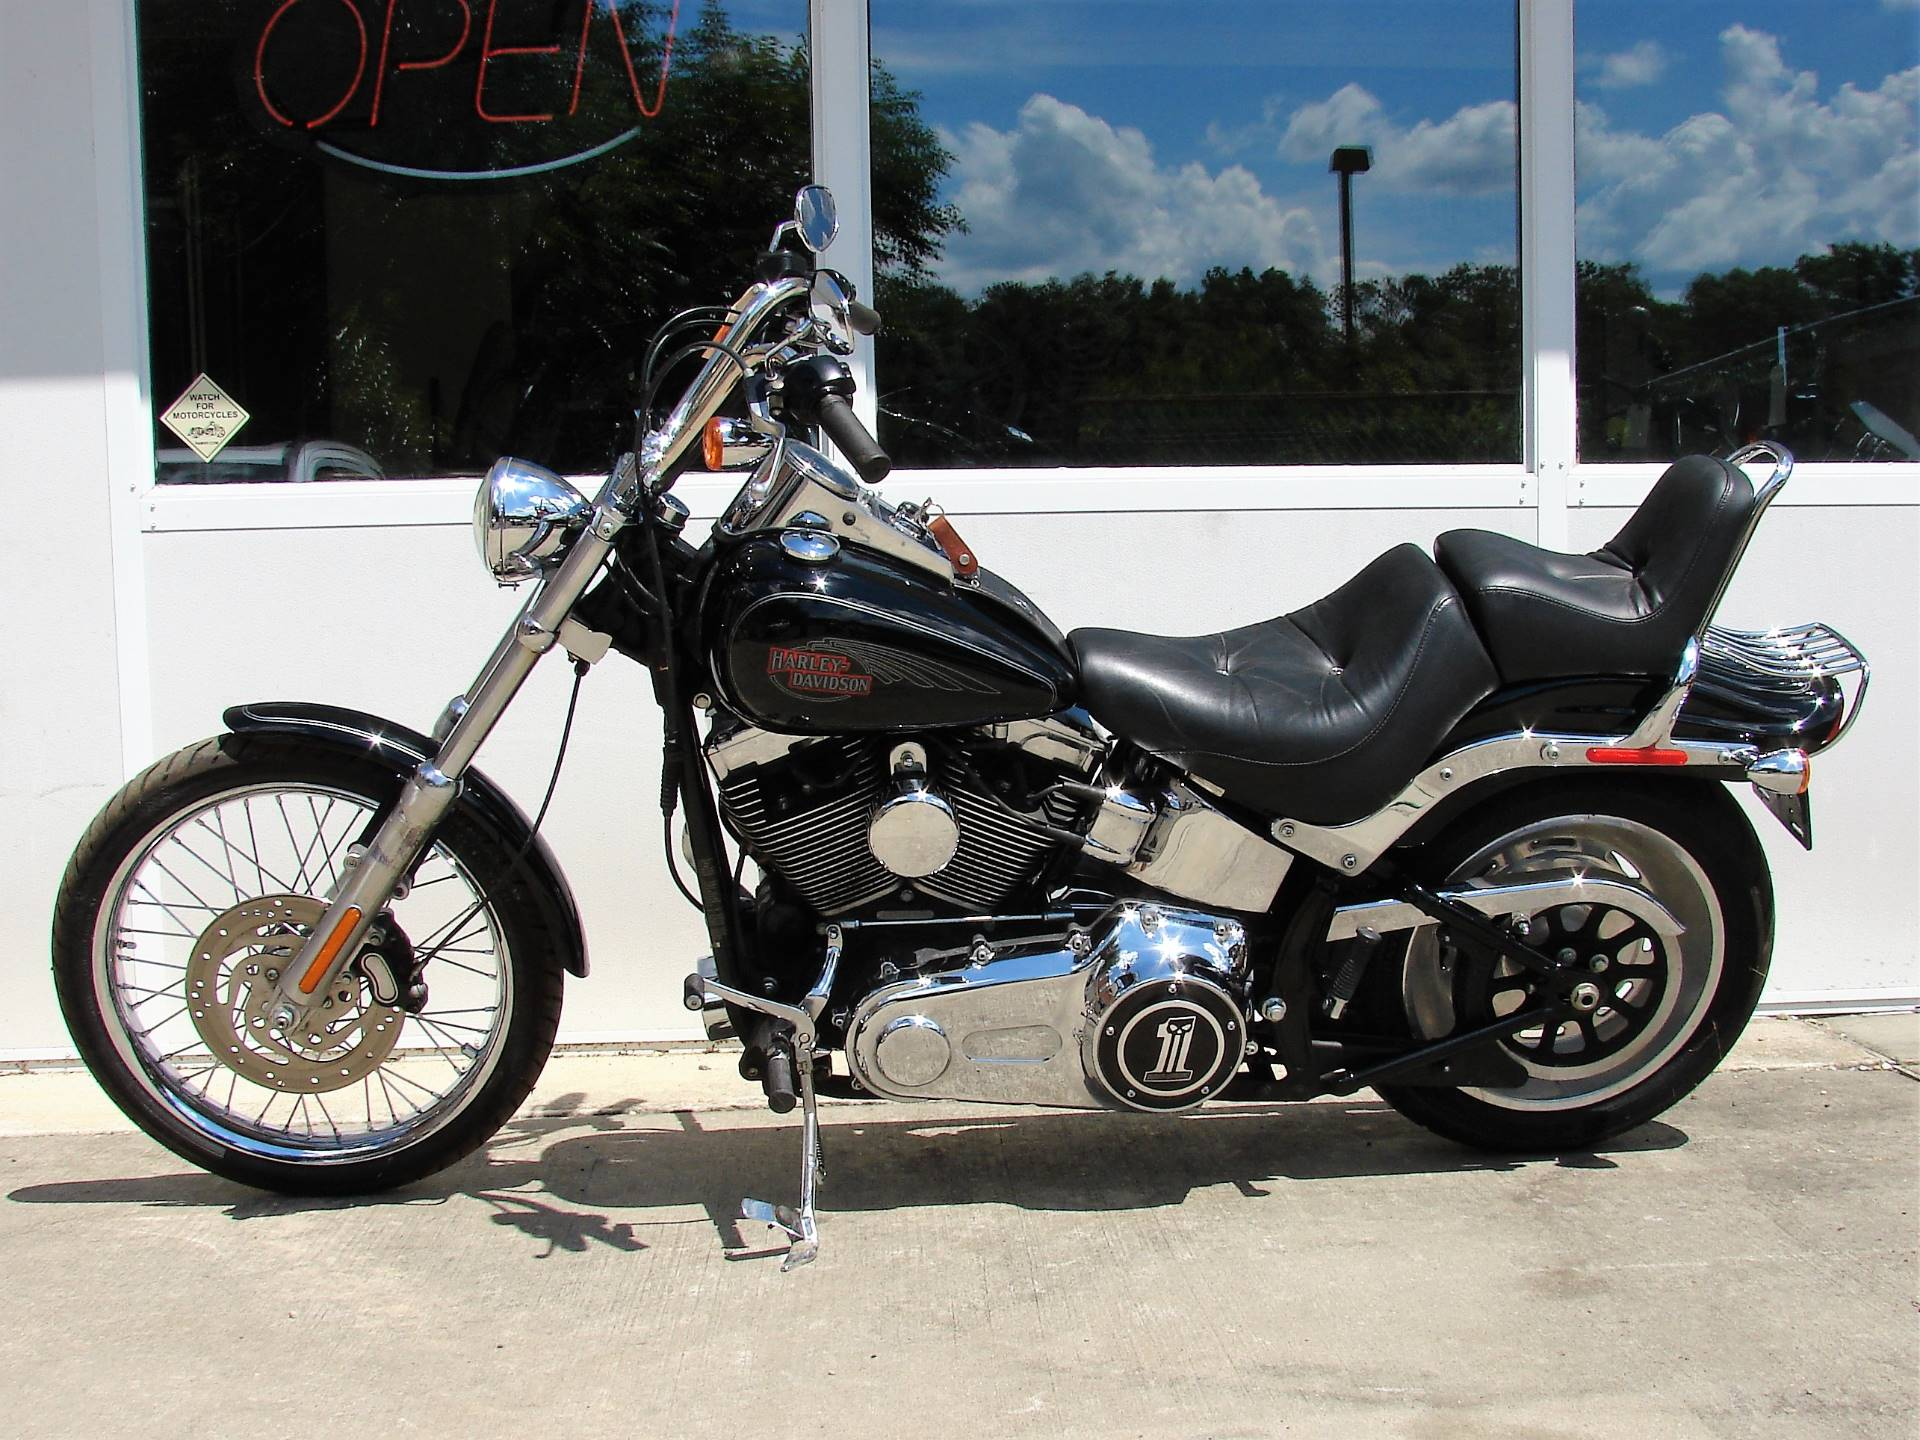 2008 Harley-Davidson Softail Custom - (Vivid Black) in Williamstown, New Jersey